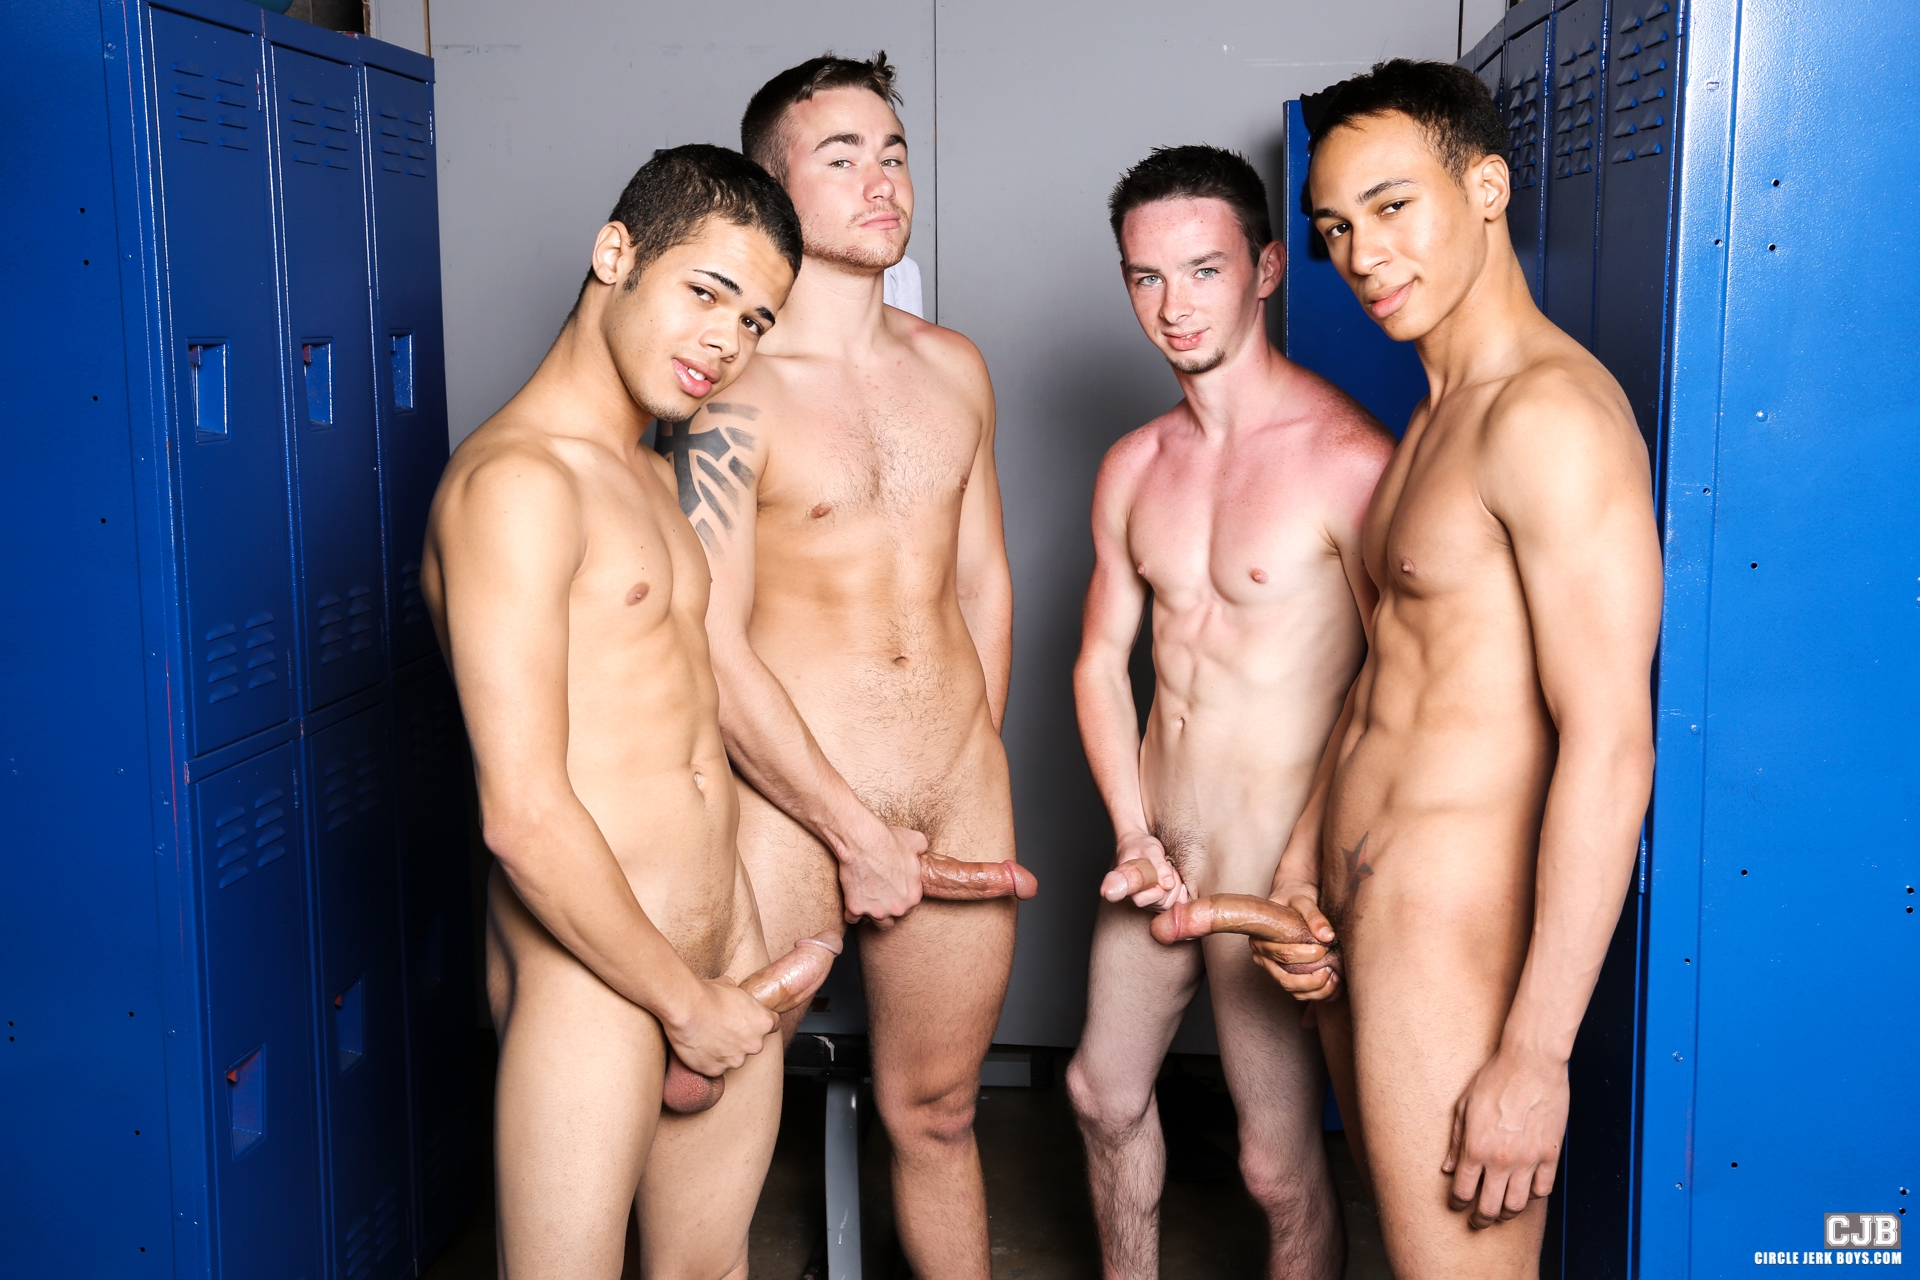 Hung College Jock Amazing the boys are back in the locker room dressing down before the big